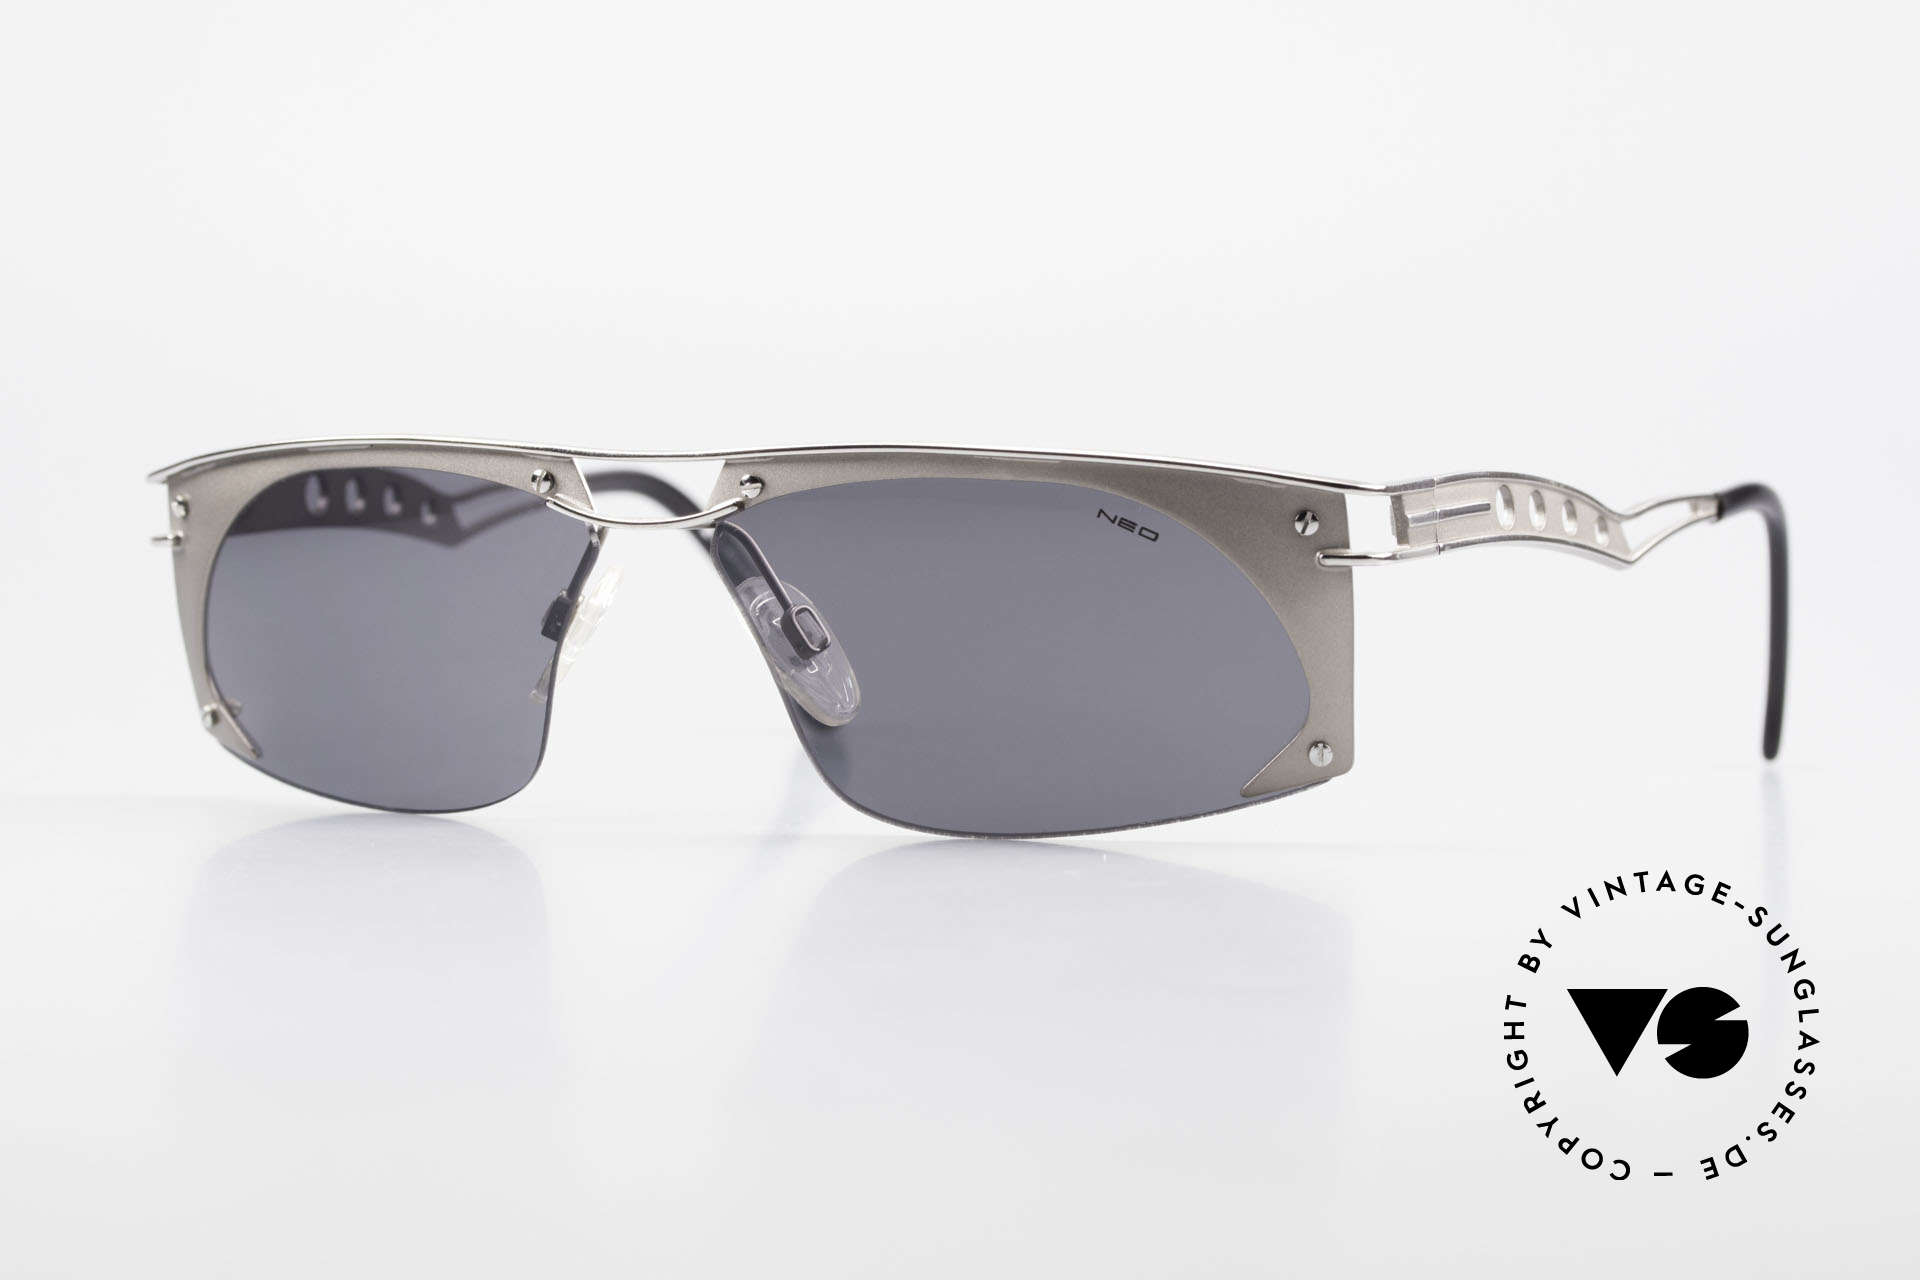 Neostyle Holiday 968 1990's Steampunk Sunglasses, extraordinary NEOSTYLE sunglasses from the 90's, Made for Men